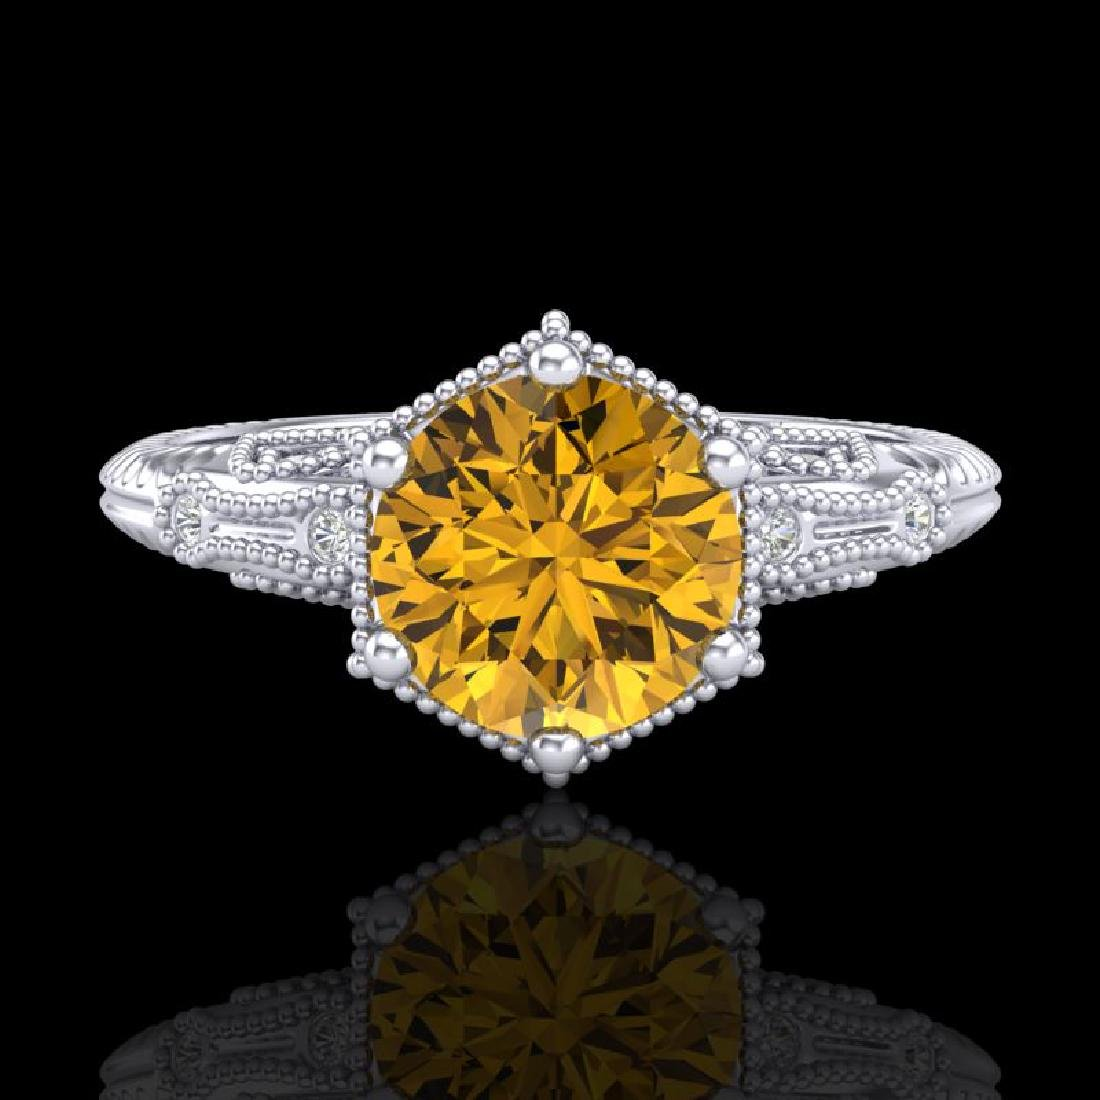 1.17 CTW Intense Fancy Yellow Diamond Engagement Art - 2